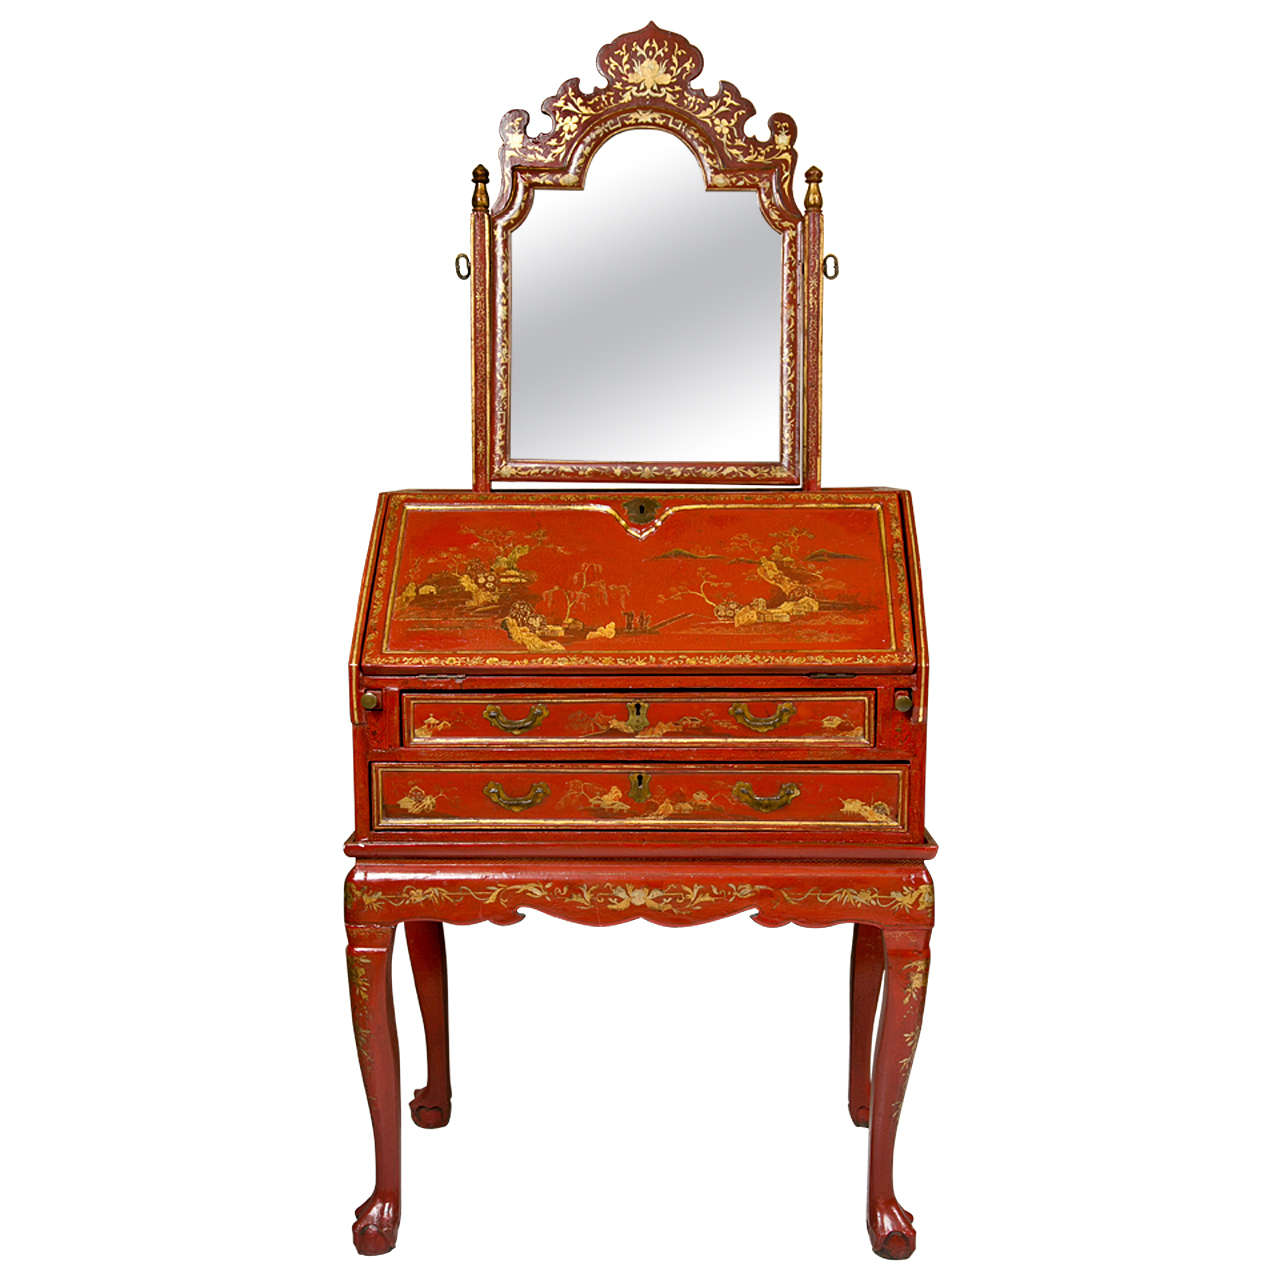 19th Century Painted Chinoiserie Desk